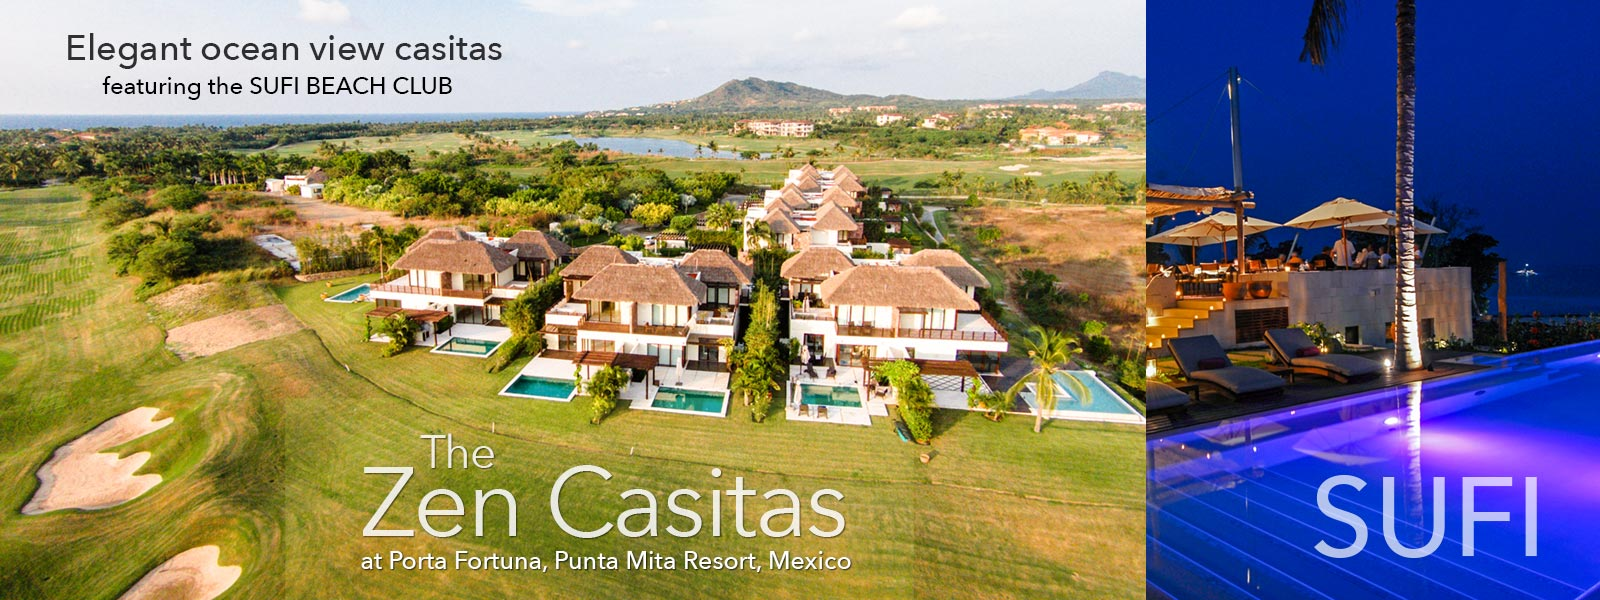 Porta Fortuna1 - Luxury Punta Mita Real Estate and Vacation Rentals Villas